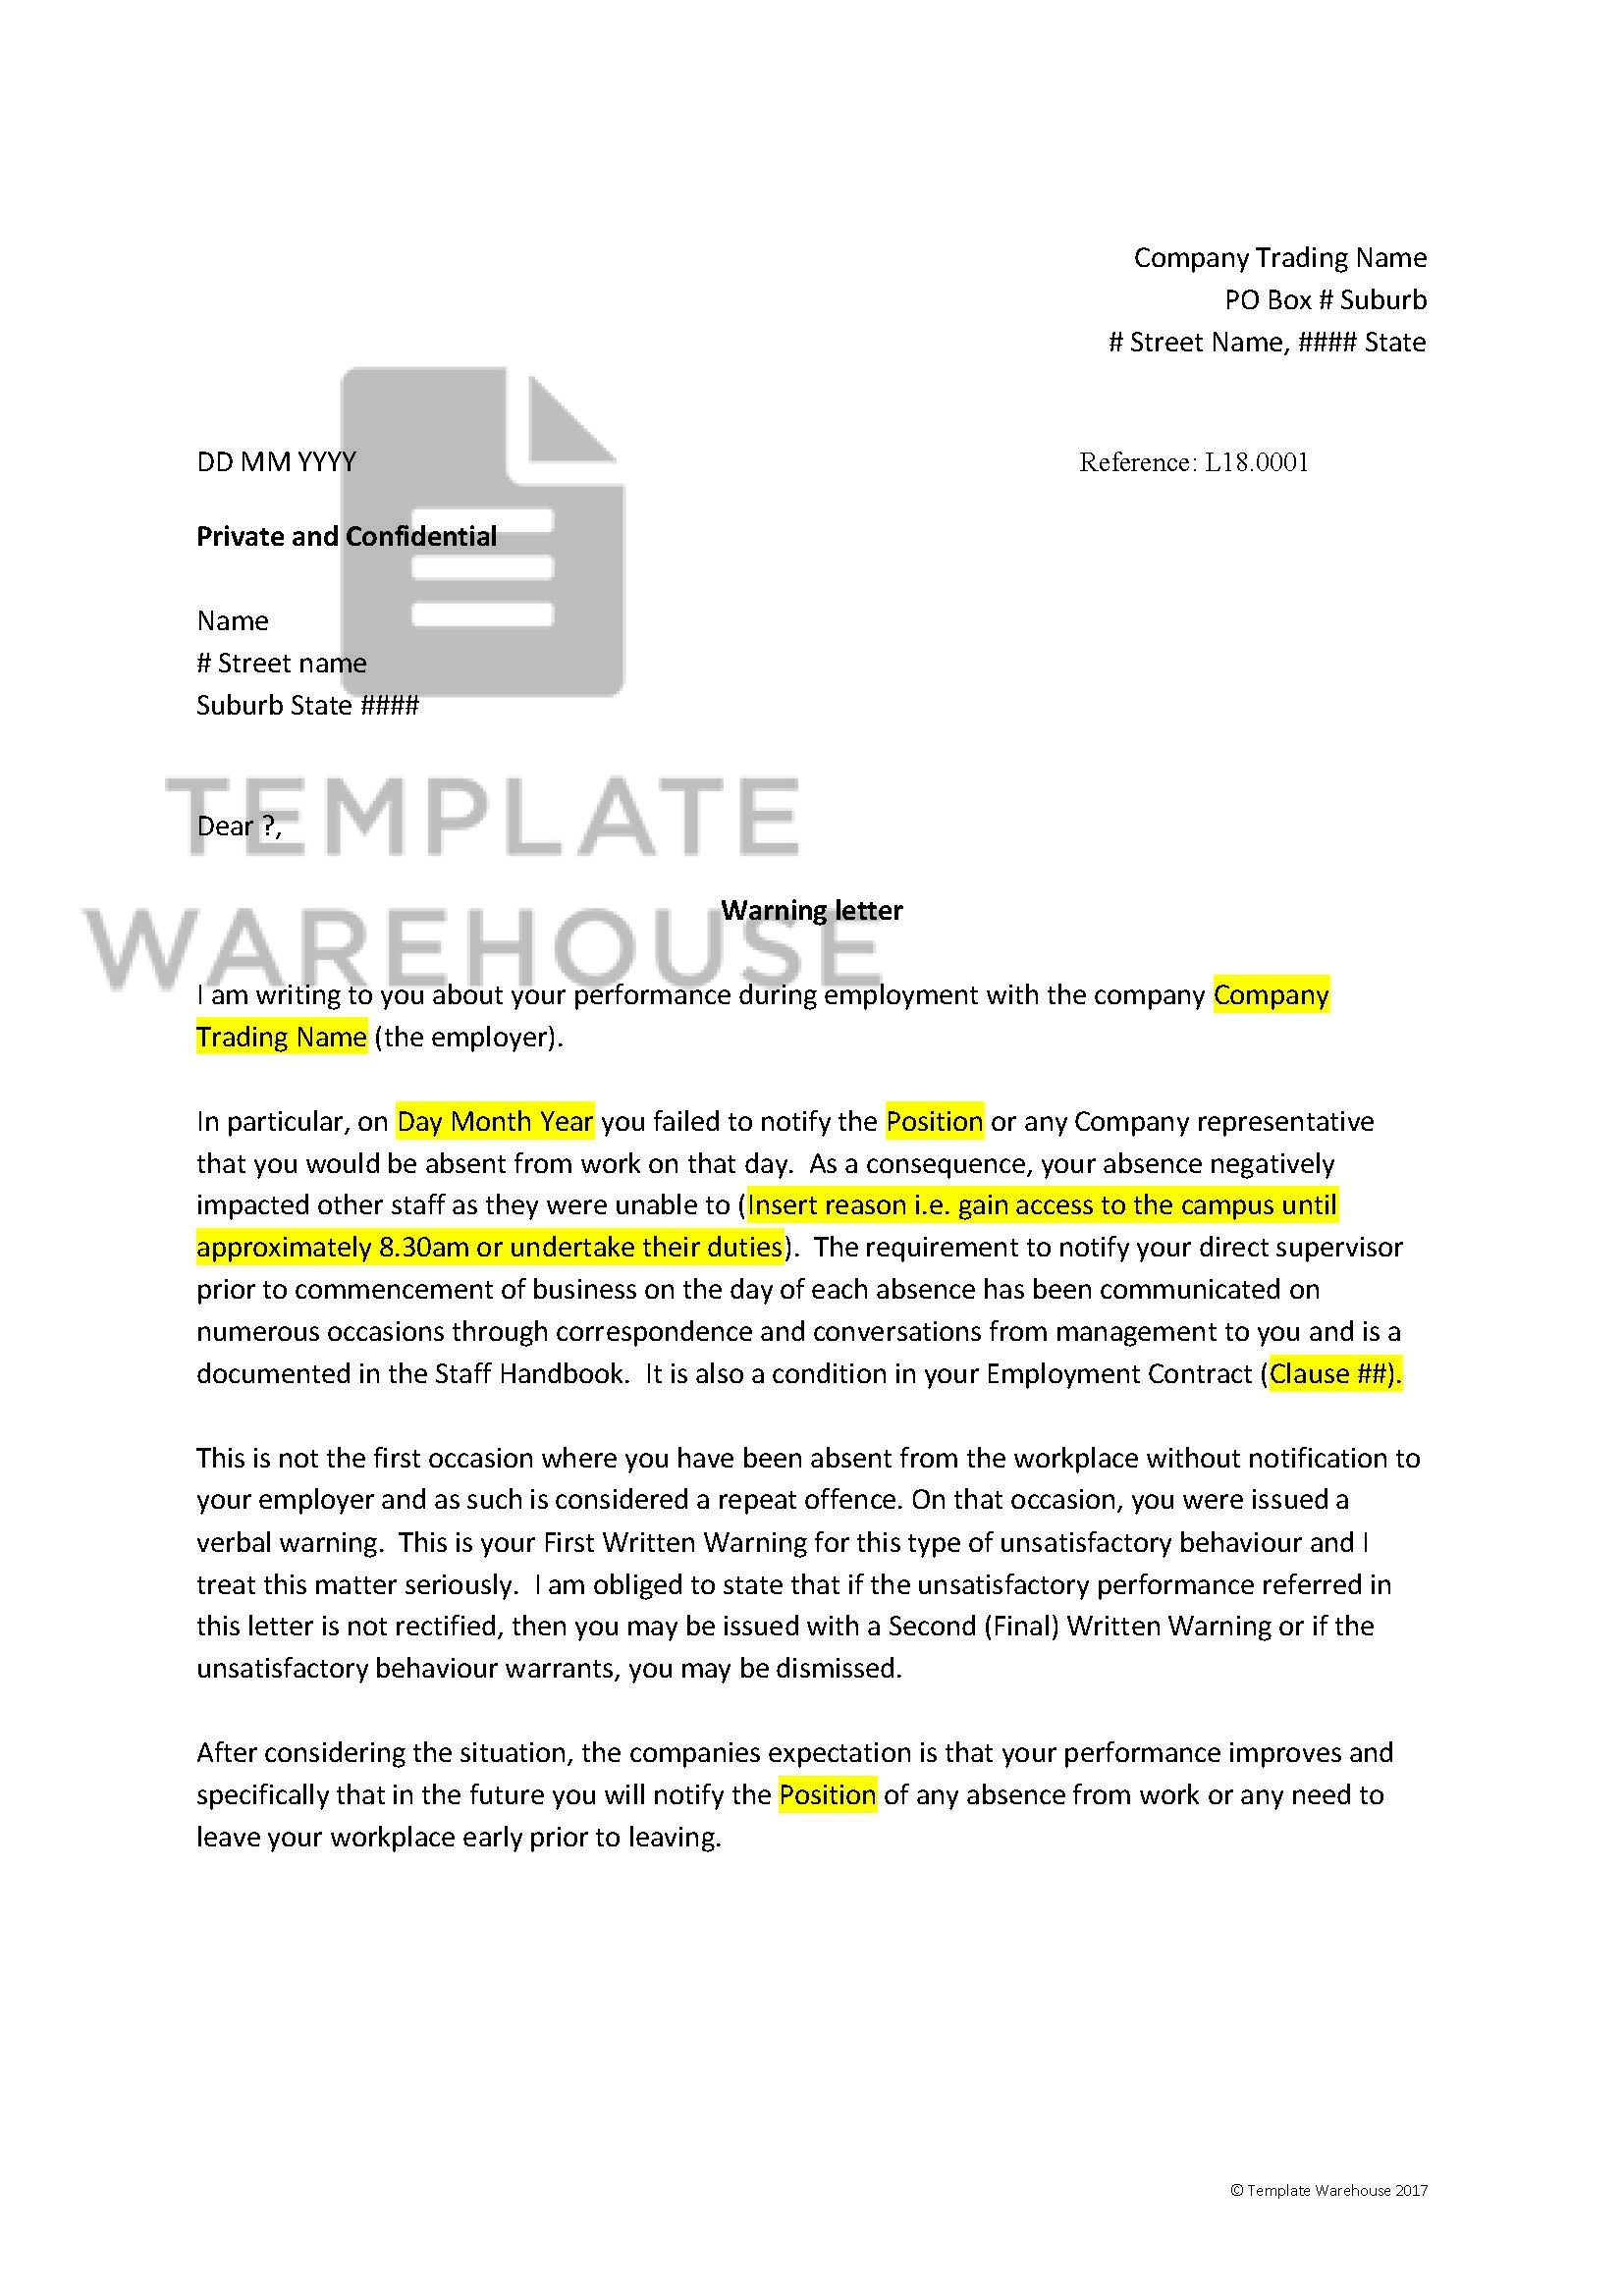 HRM-03-004 – Employee Warning Letter – Template Warehouse on confidential letter of interest, confidential cover letter, confidential fax cover sheet template,